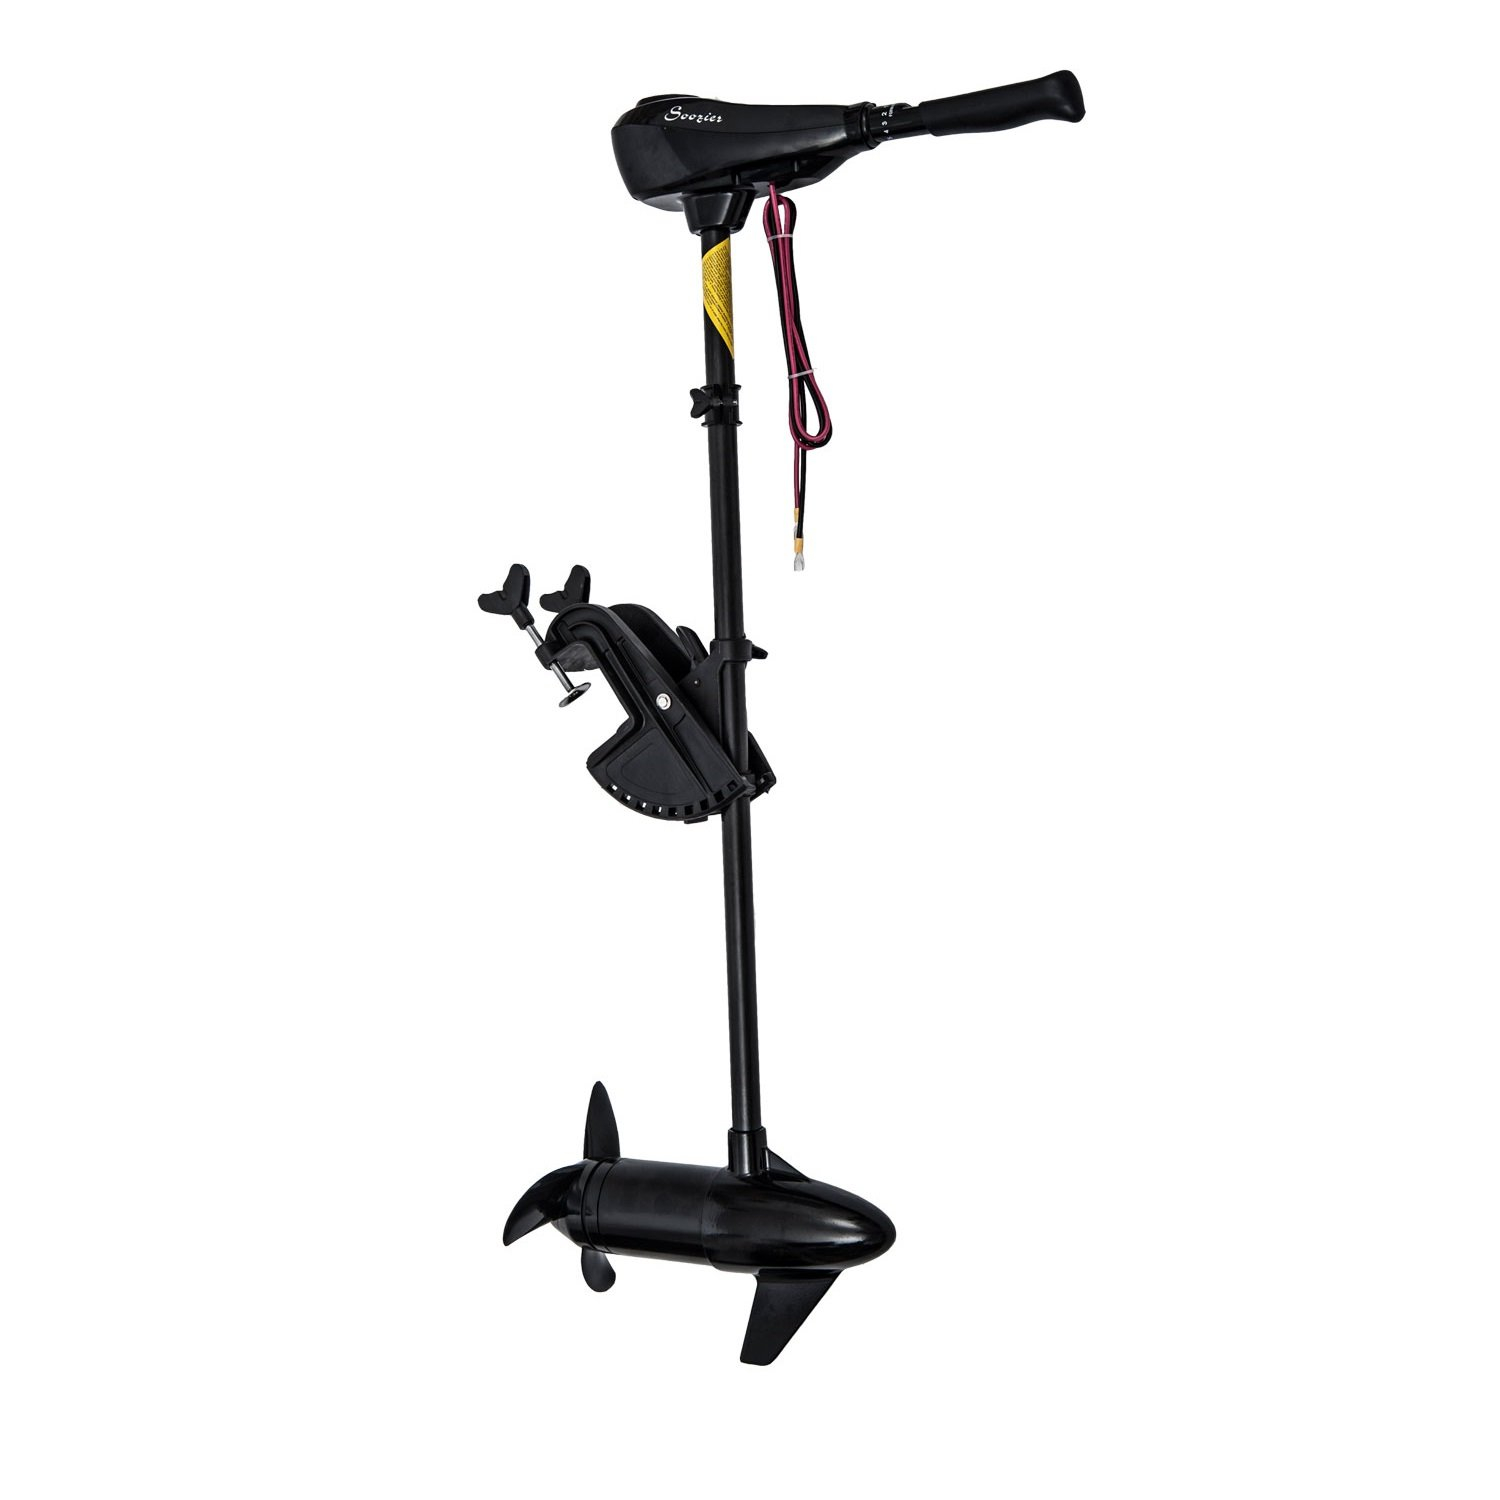 Outsunny 12V Transom Mounted 50lb Thrust Electric Fishing Boat Trolling Motor at Sears.com